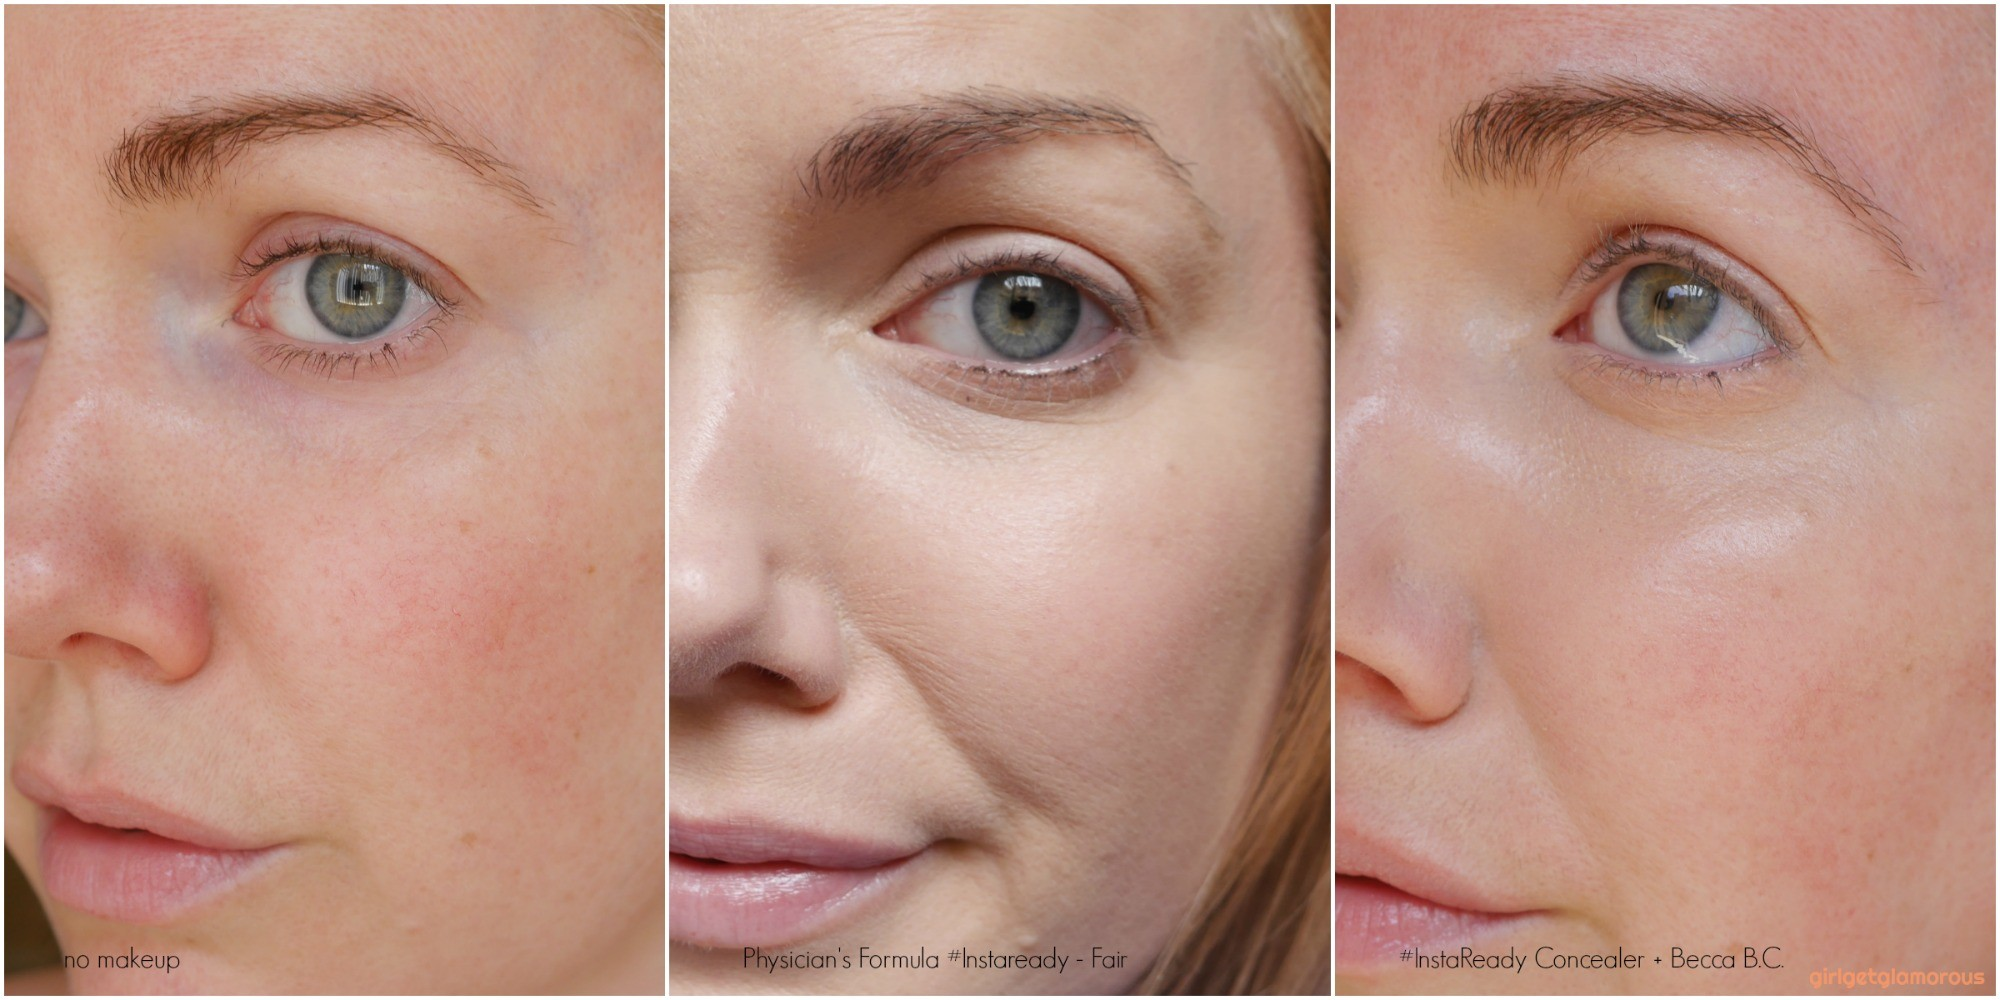 Physician's Formula instaready concealer swatch shade fair dry mature dark circles coverage